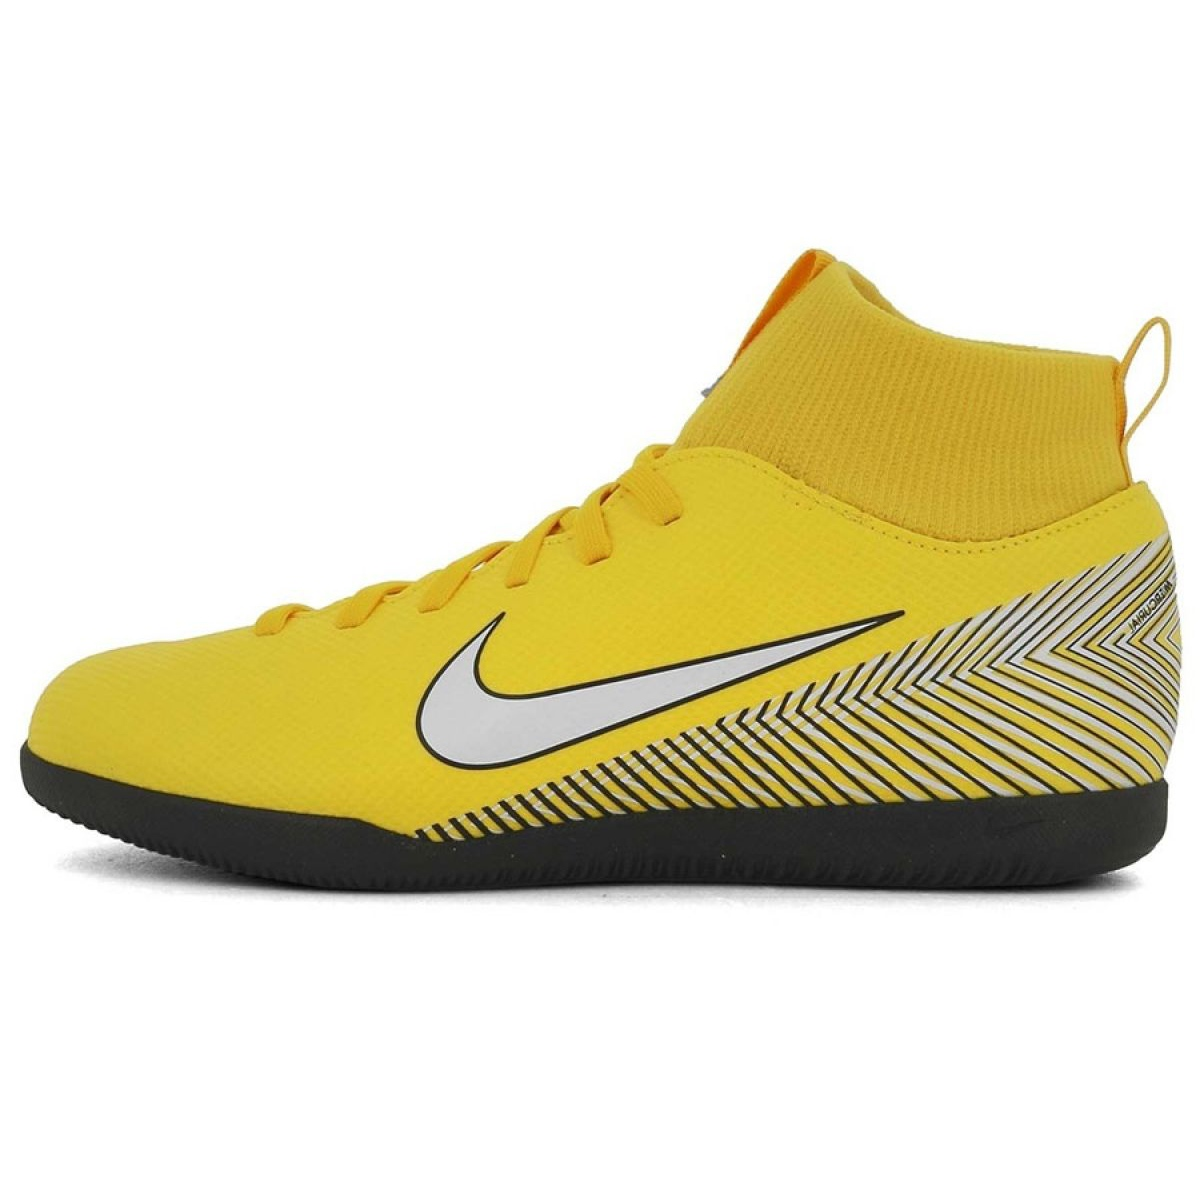 new style d86f2 4577b Indoor shoes Nike Mercurial SuperflyX 6 Club Neymar Ic Jr AO2891-710  picture 1